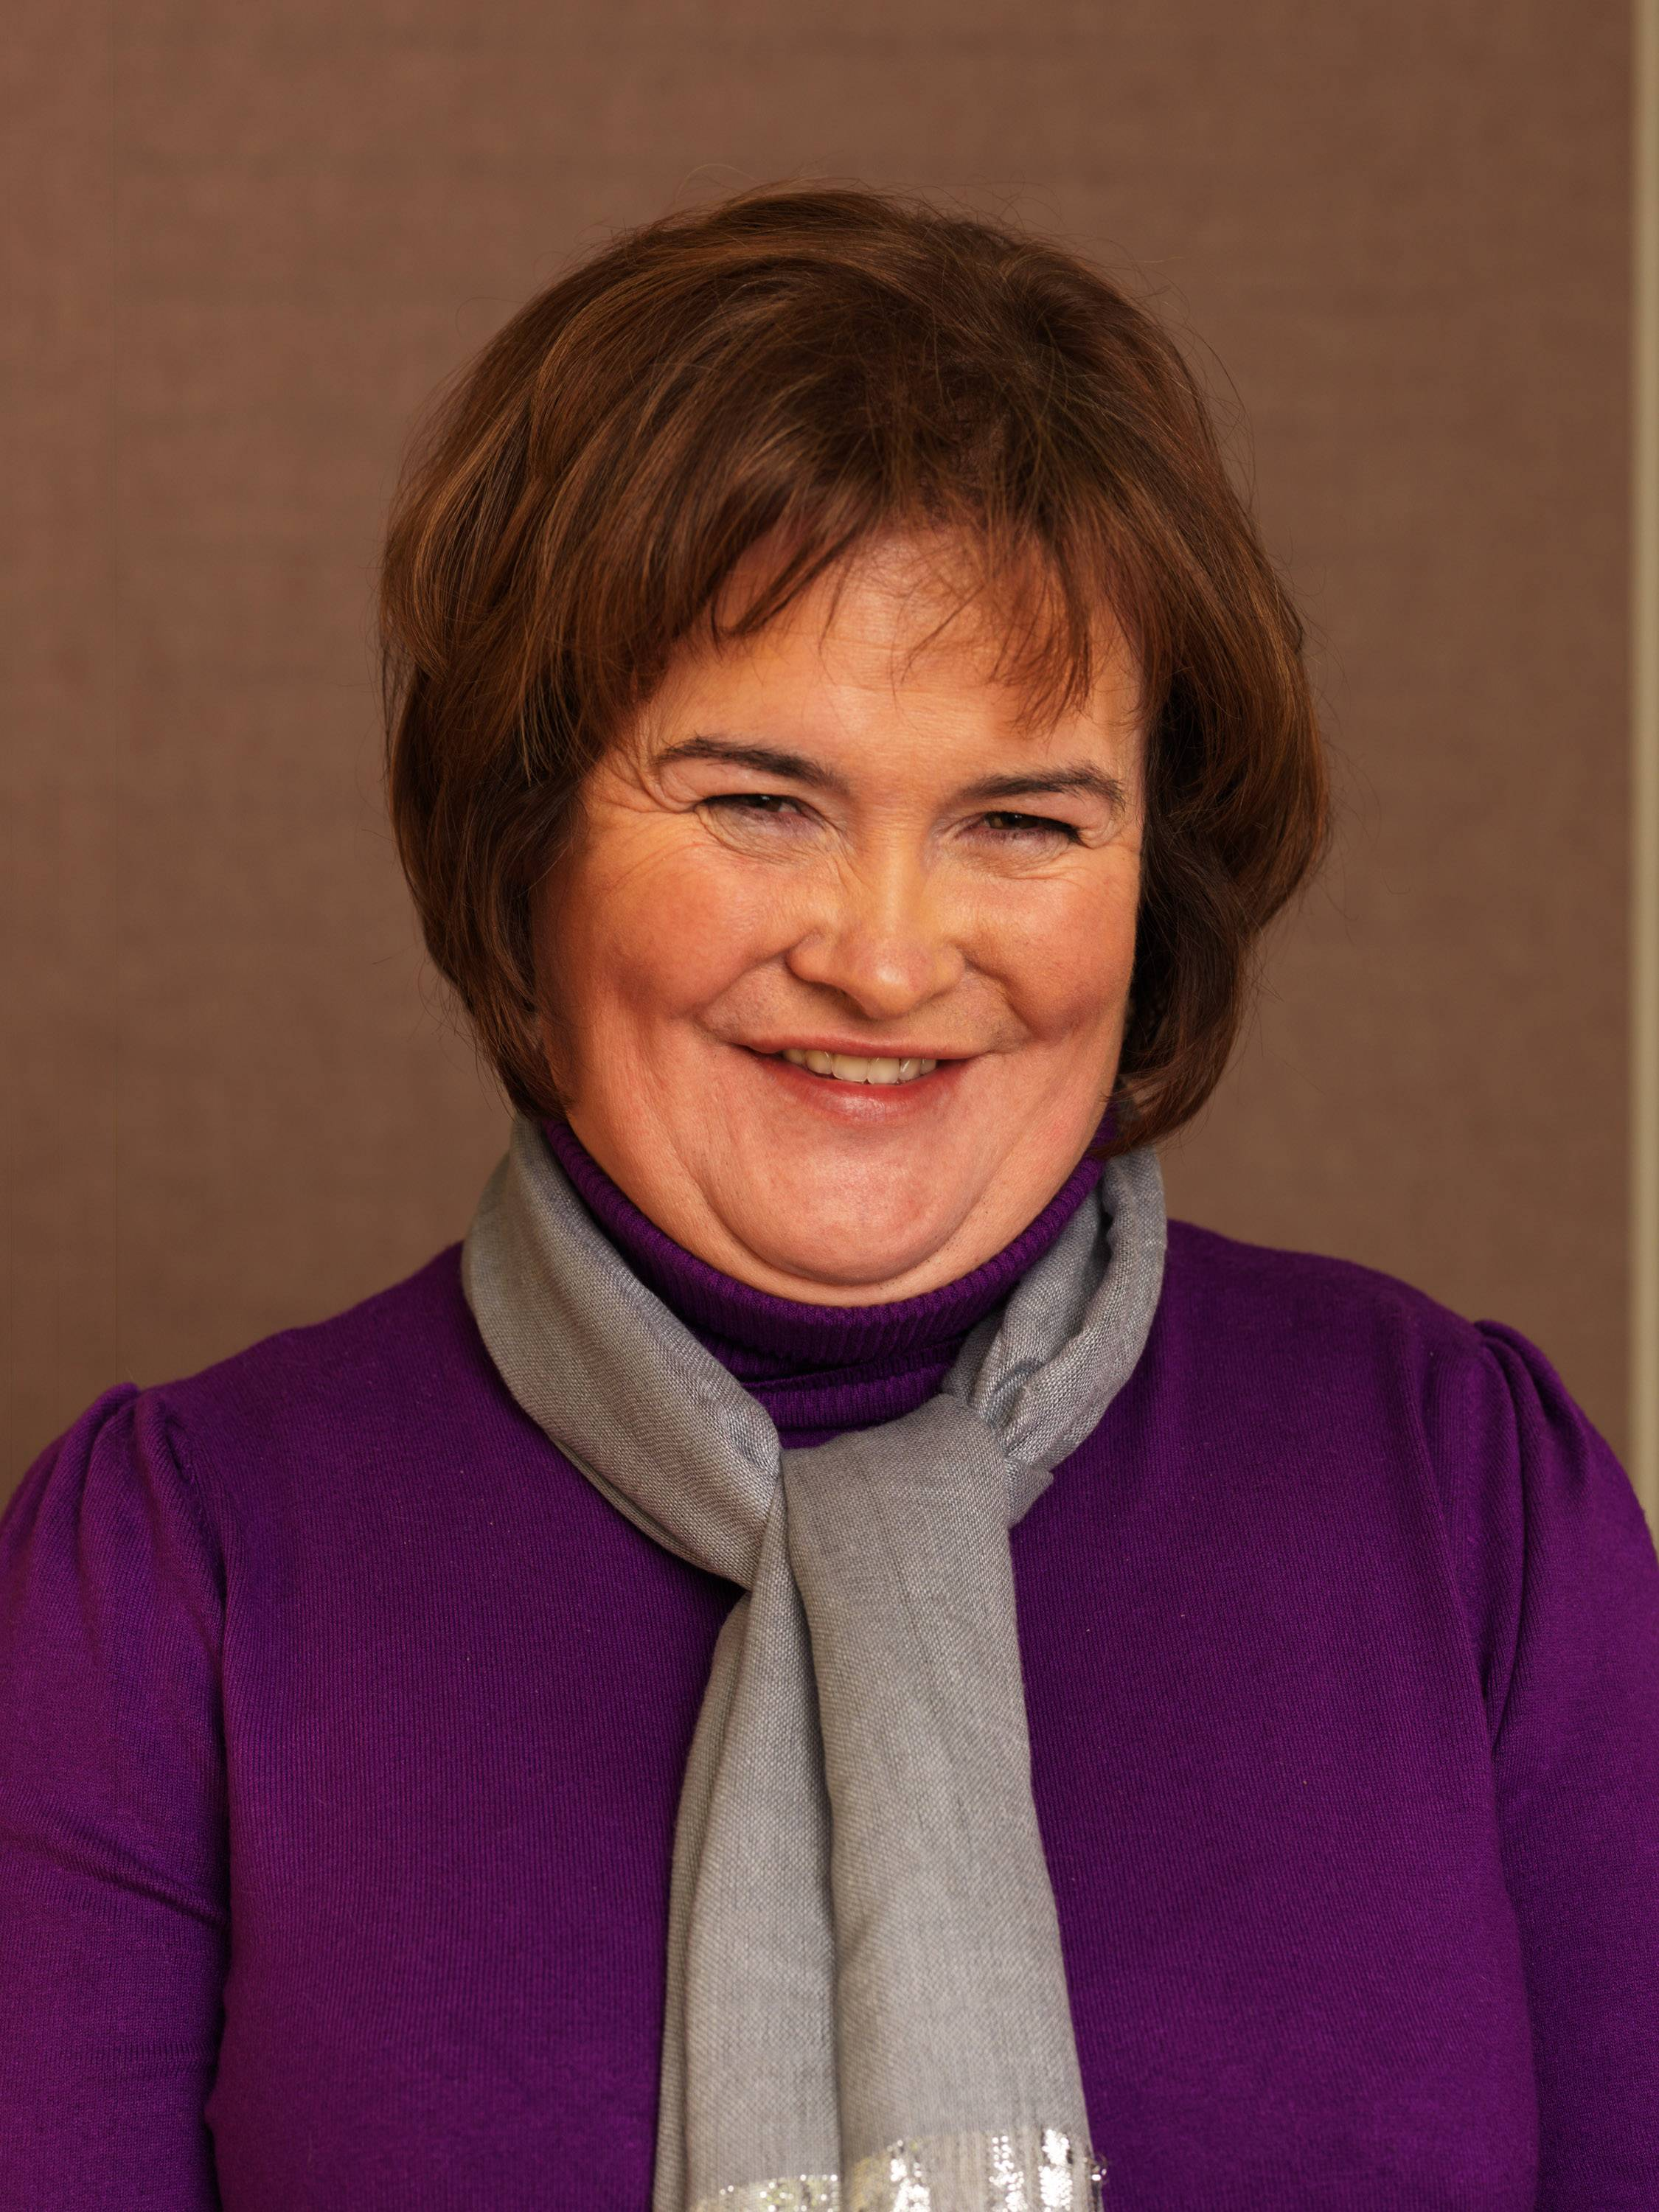 Susan Boyle - No singer has benefited more from a talent competition show than Susan Boyle. The Scottish singer's performance of ?I Dreamed a Dream? from Les Miserables on the TV show Britain's Got Talent took the world by storm. Boyle?s debut release was the biggest-selling album in 2009 with over 9 million units sold.(Photo: Dave J Hogan/Getty Images)